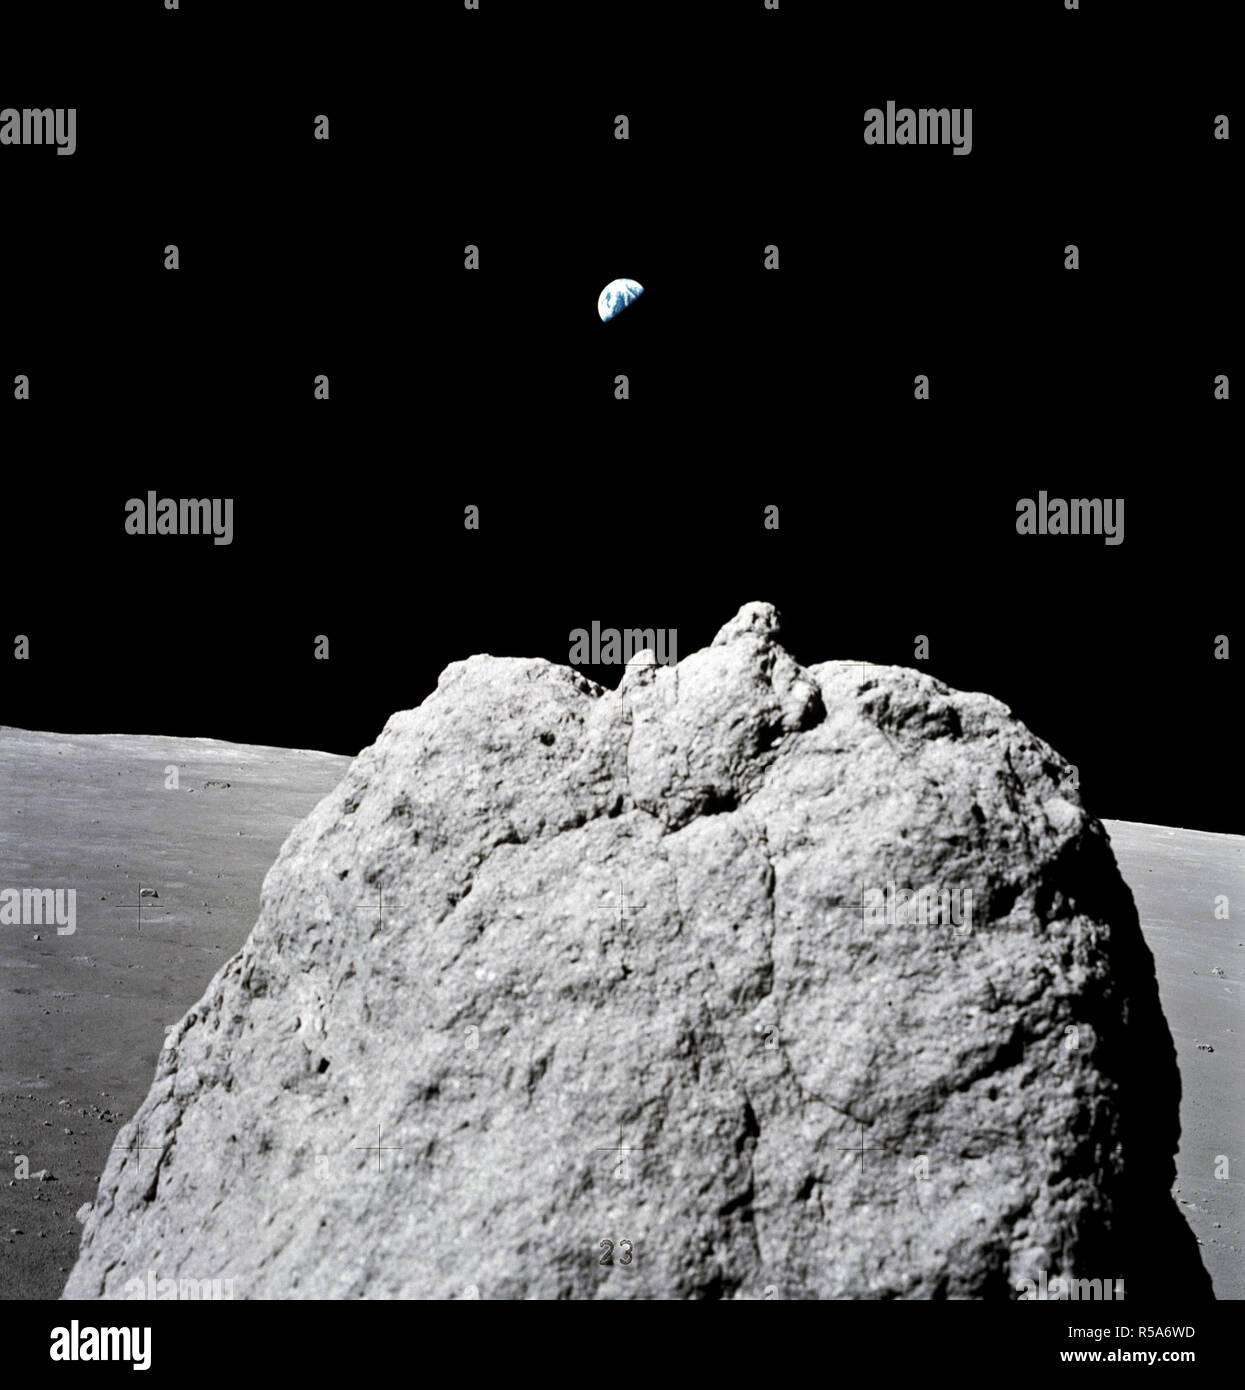 (7-19 Dec. 1972) --- Earth (far distant background) is seen above a large lunar boulder (foreground) on the moon. The photo was taken with a handheld Hasselblad camera by the last two moon walkers in the Apollo Program. - Stock Image